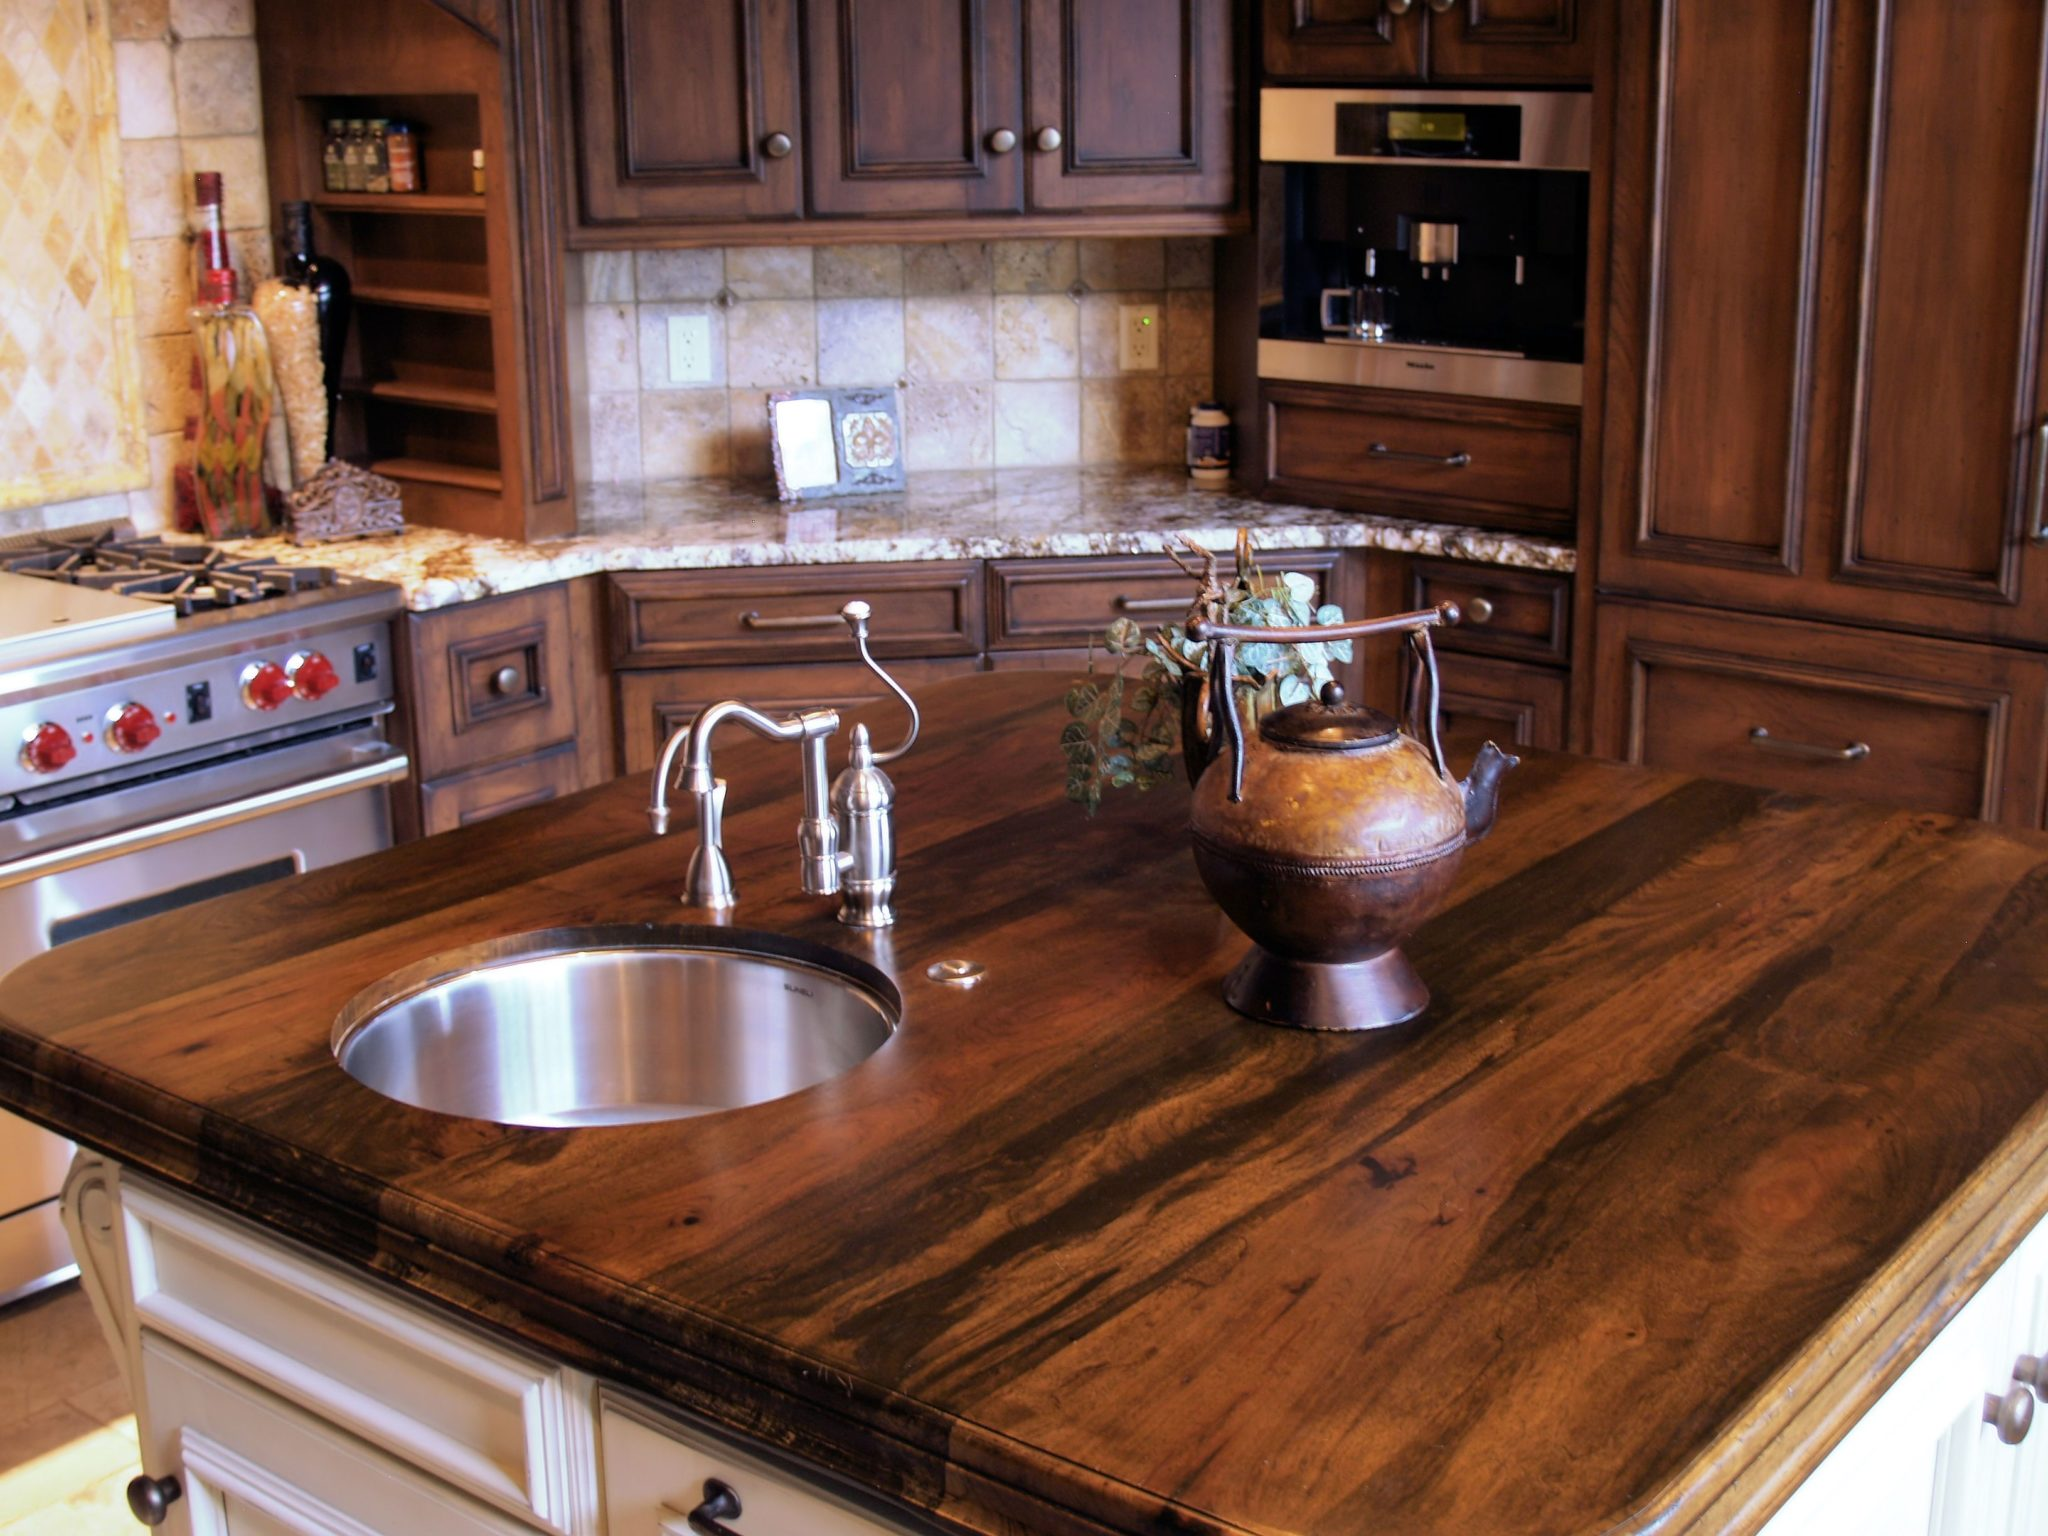 A kitchen island with a dark wooden countertop is the ultimate centerpiece